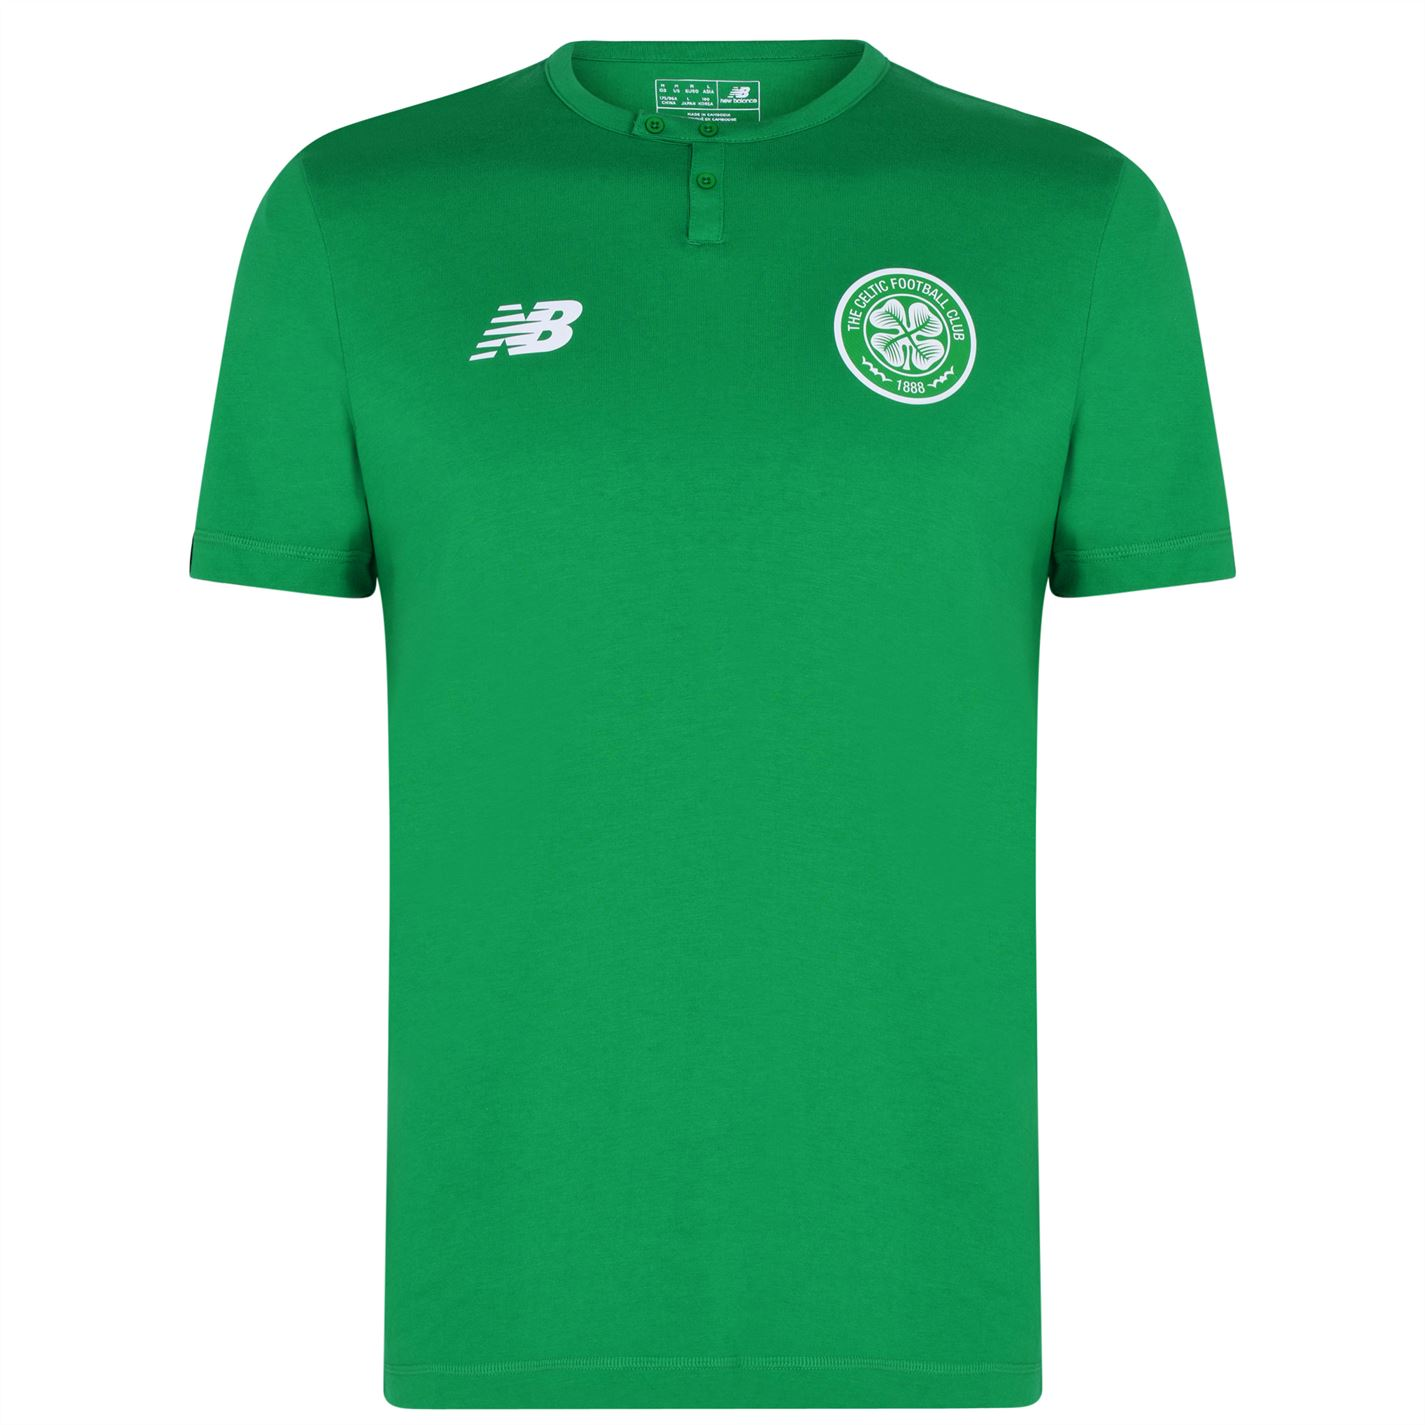 Mergi la Tricou New Balance Balance Celtic Button verde